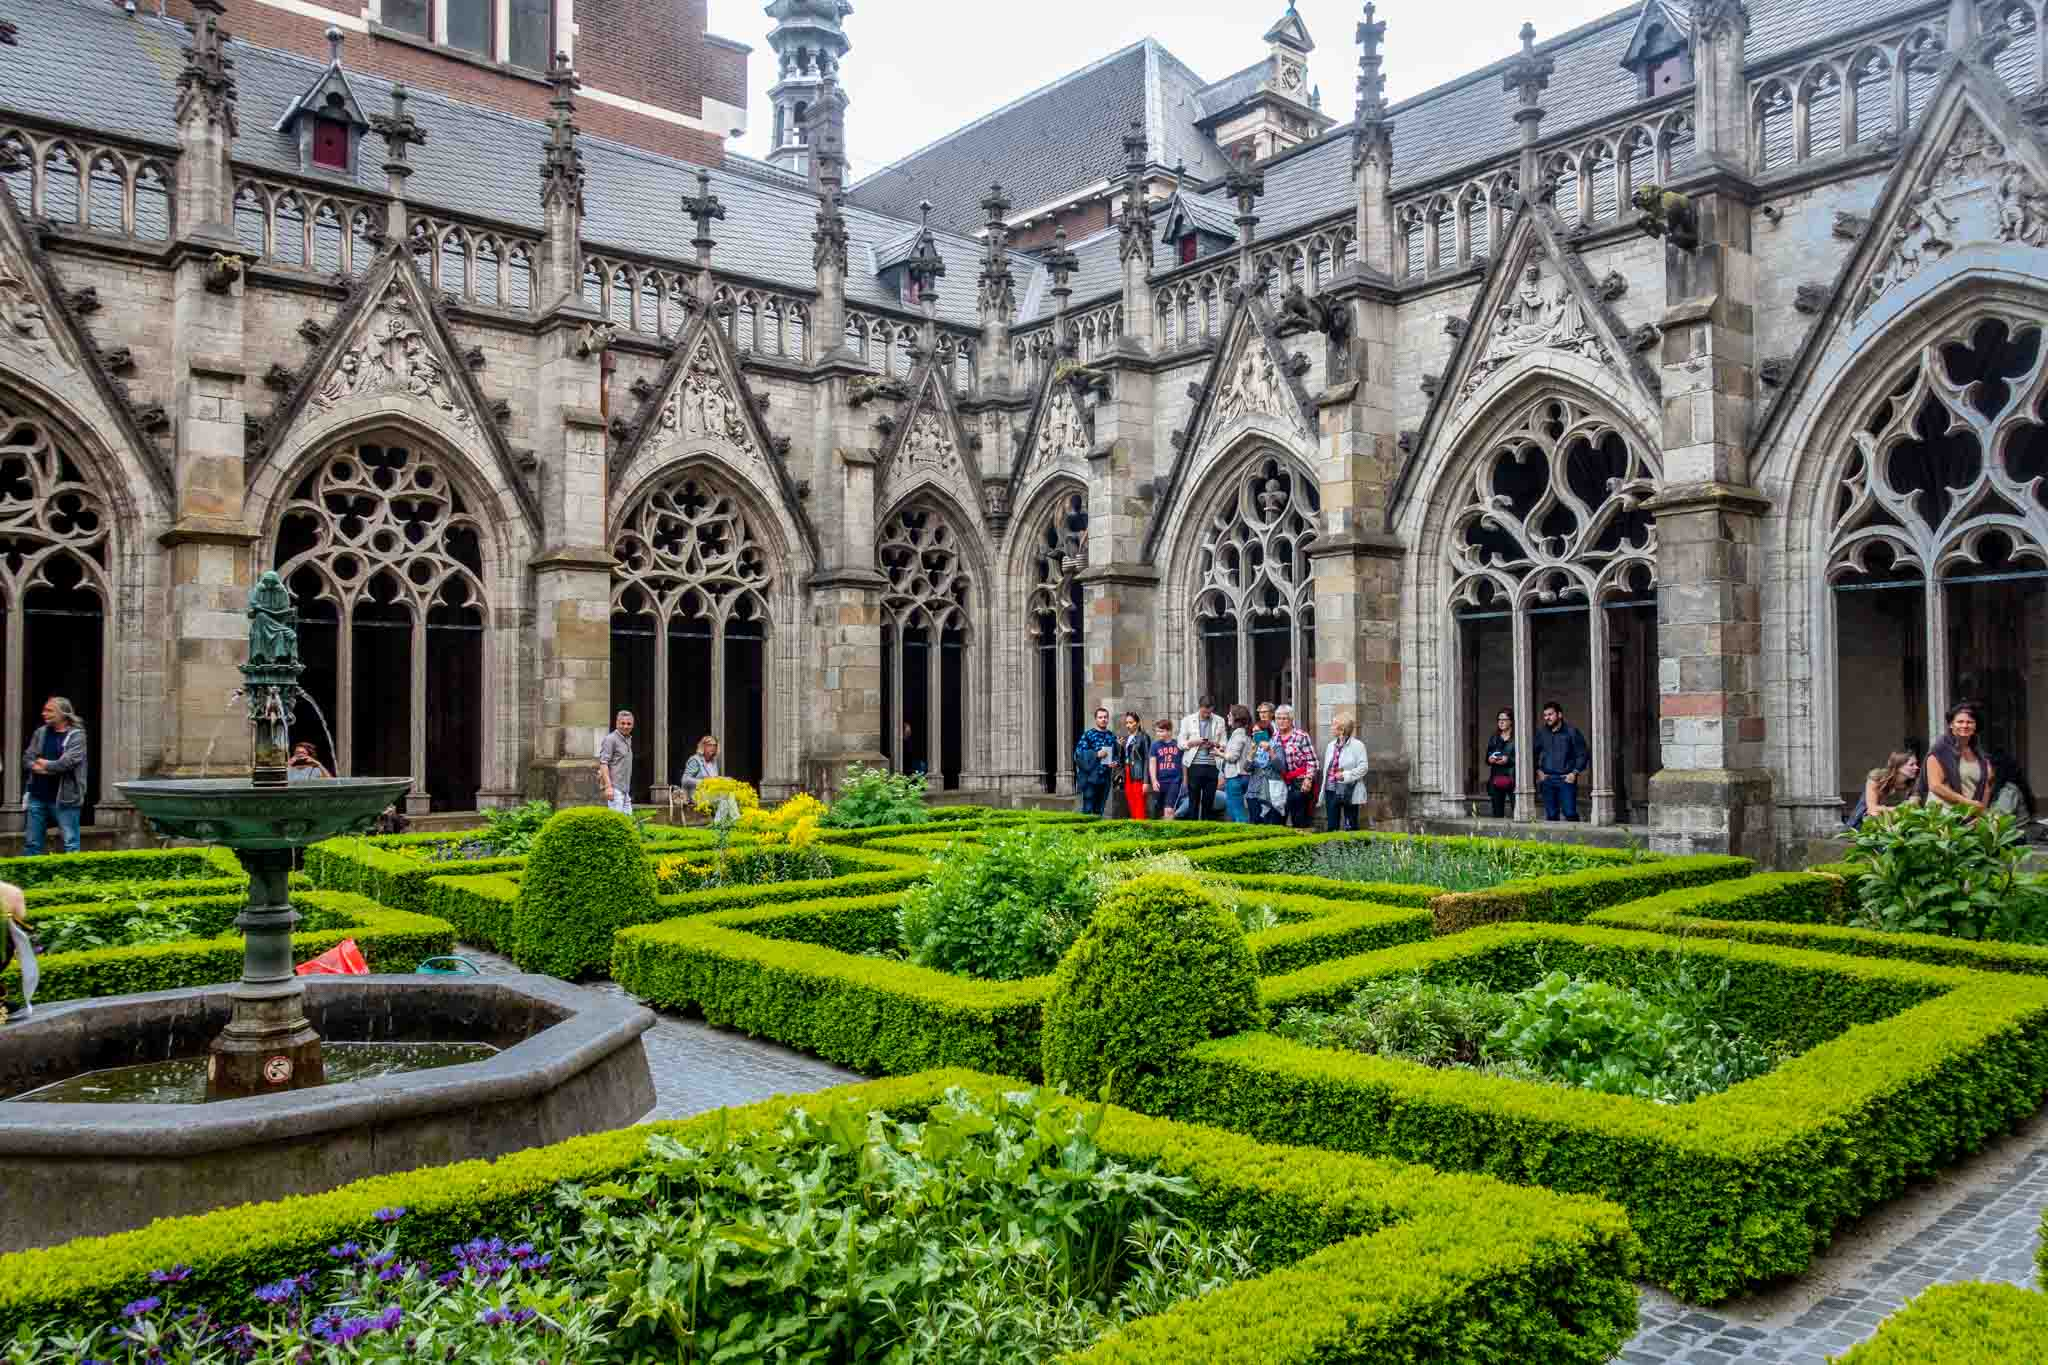 People in a garden surrounded by stone cloister building